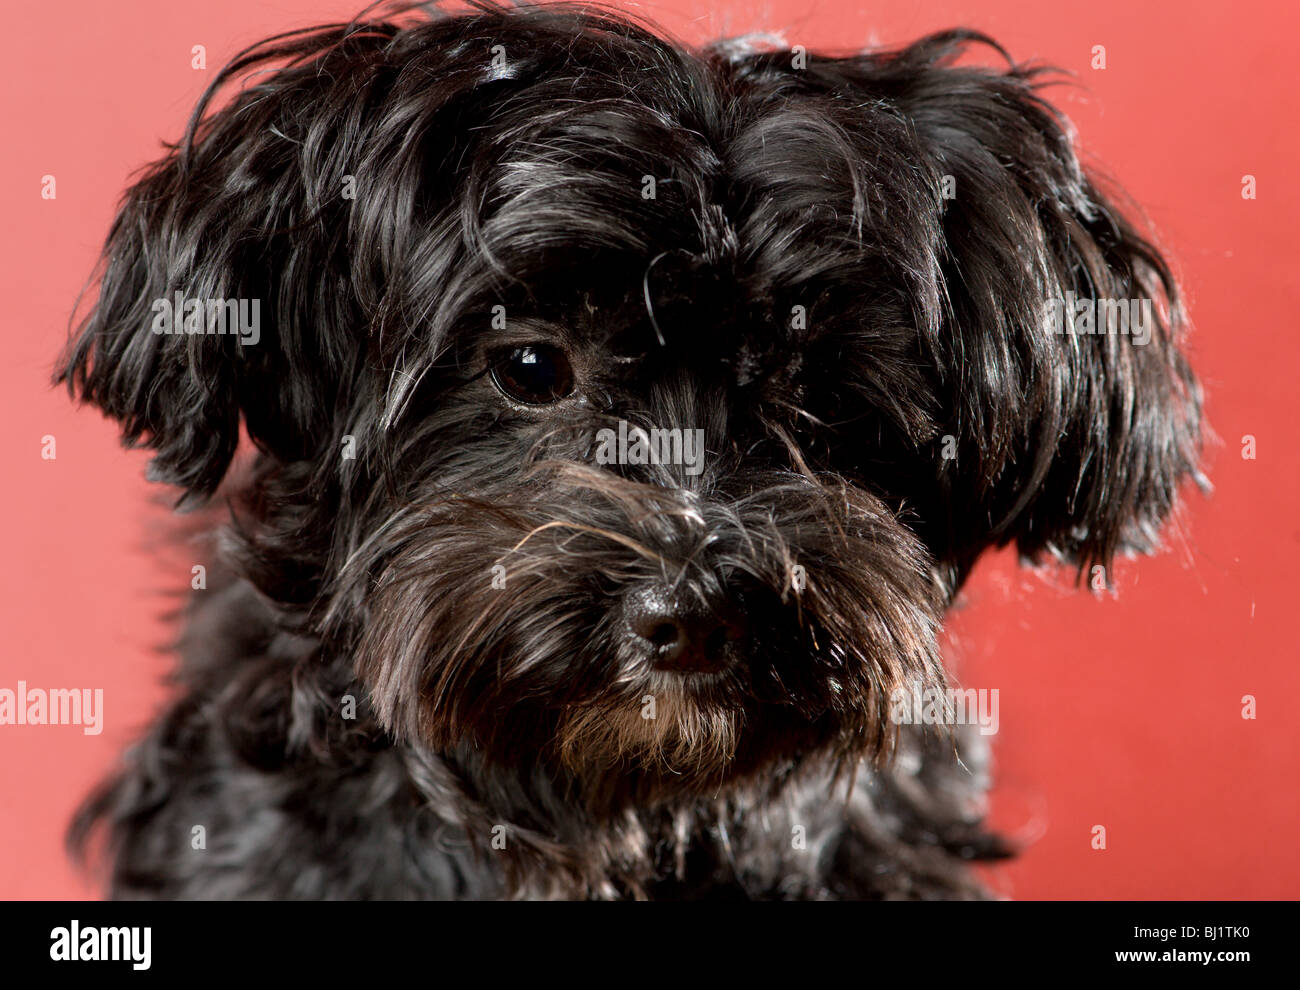 Close Up Portrait Of A Sad Looking Black Maltese Yorkie Mix Dog